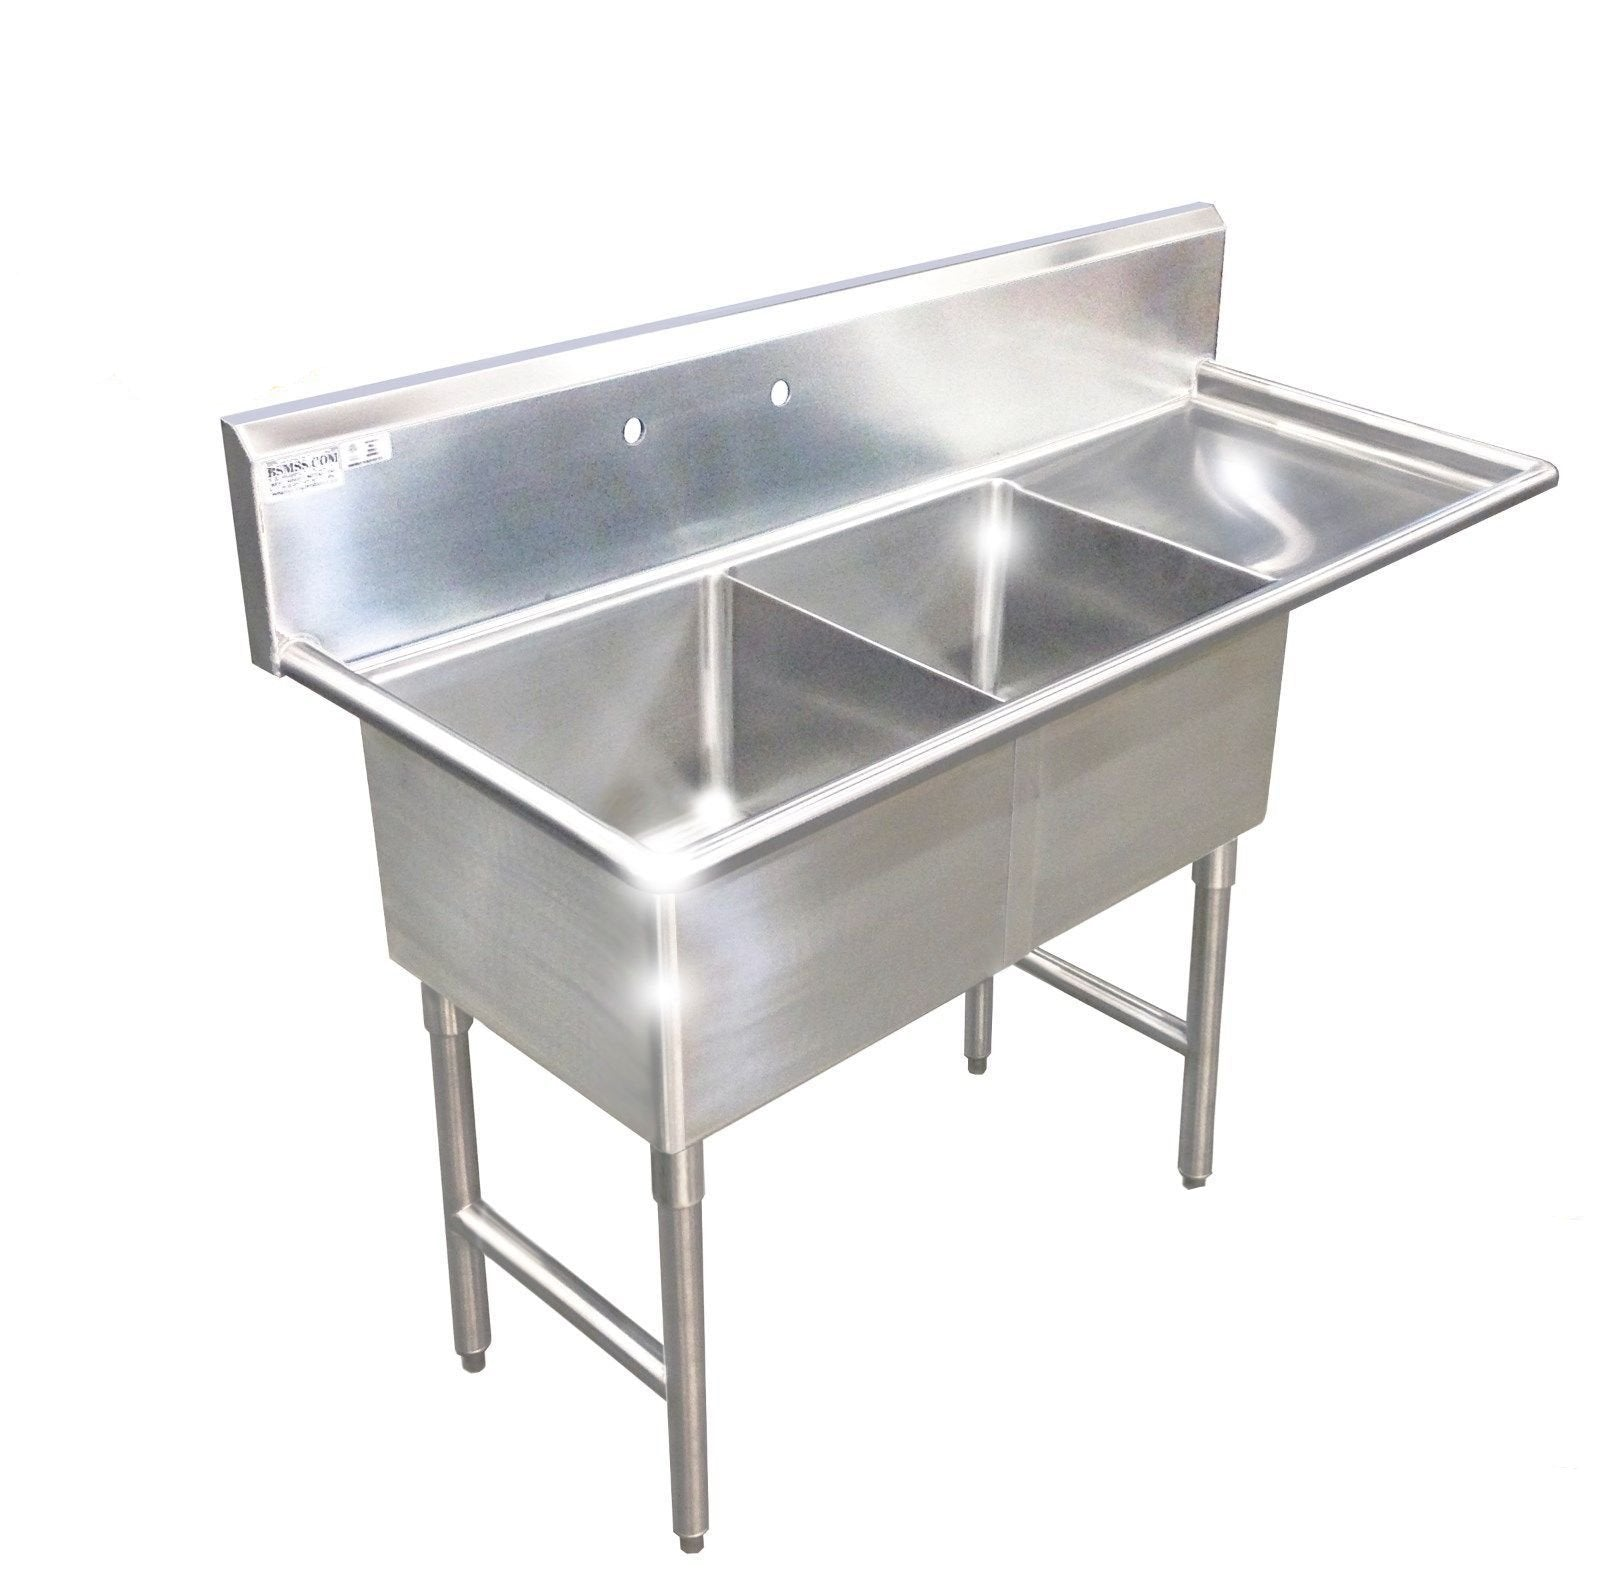 Picture of: Heavy Duty Stainless Steel 14 Gauge 0 0781 Type 304 2 Compartment Restaurant Commercial Sink 56 1 2 With Drain Board S5624 181812 Commercial Stainless Steel Wash Up Sinks